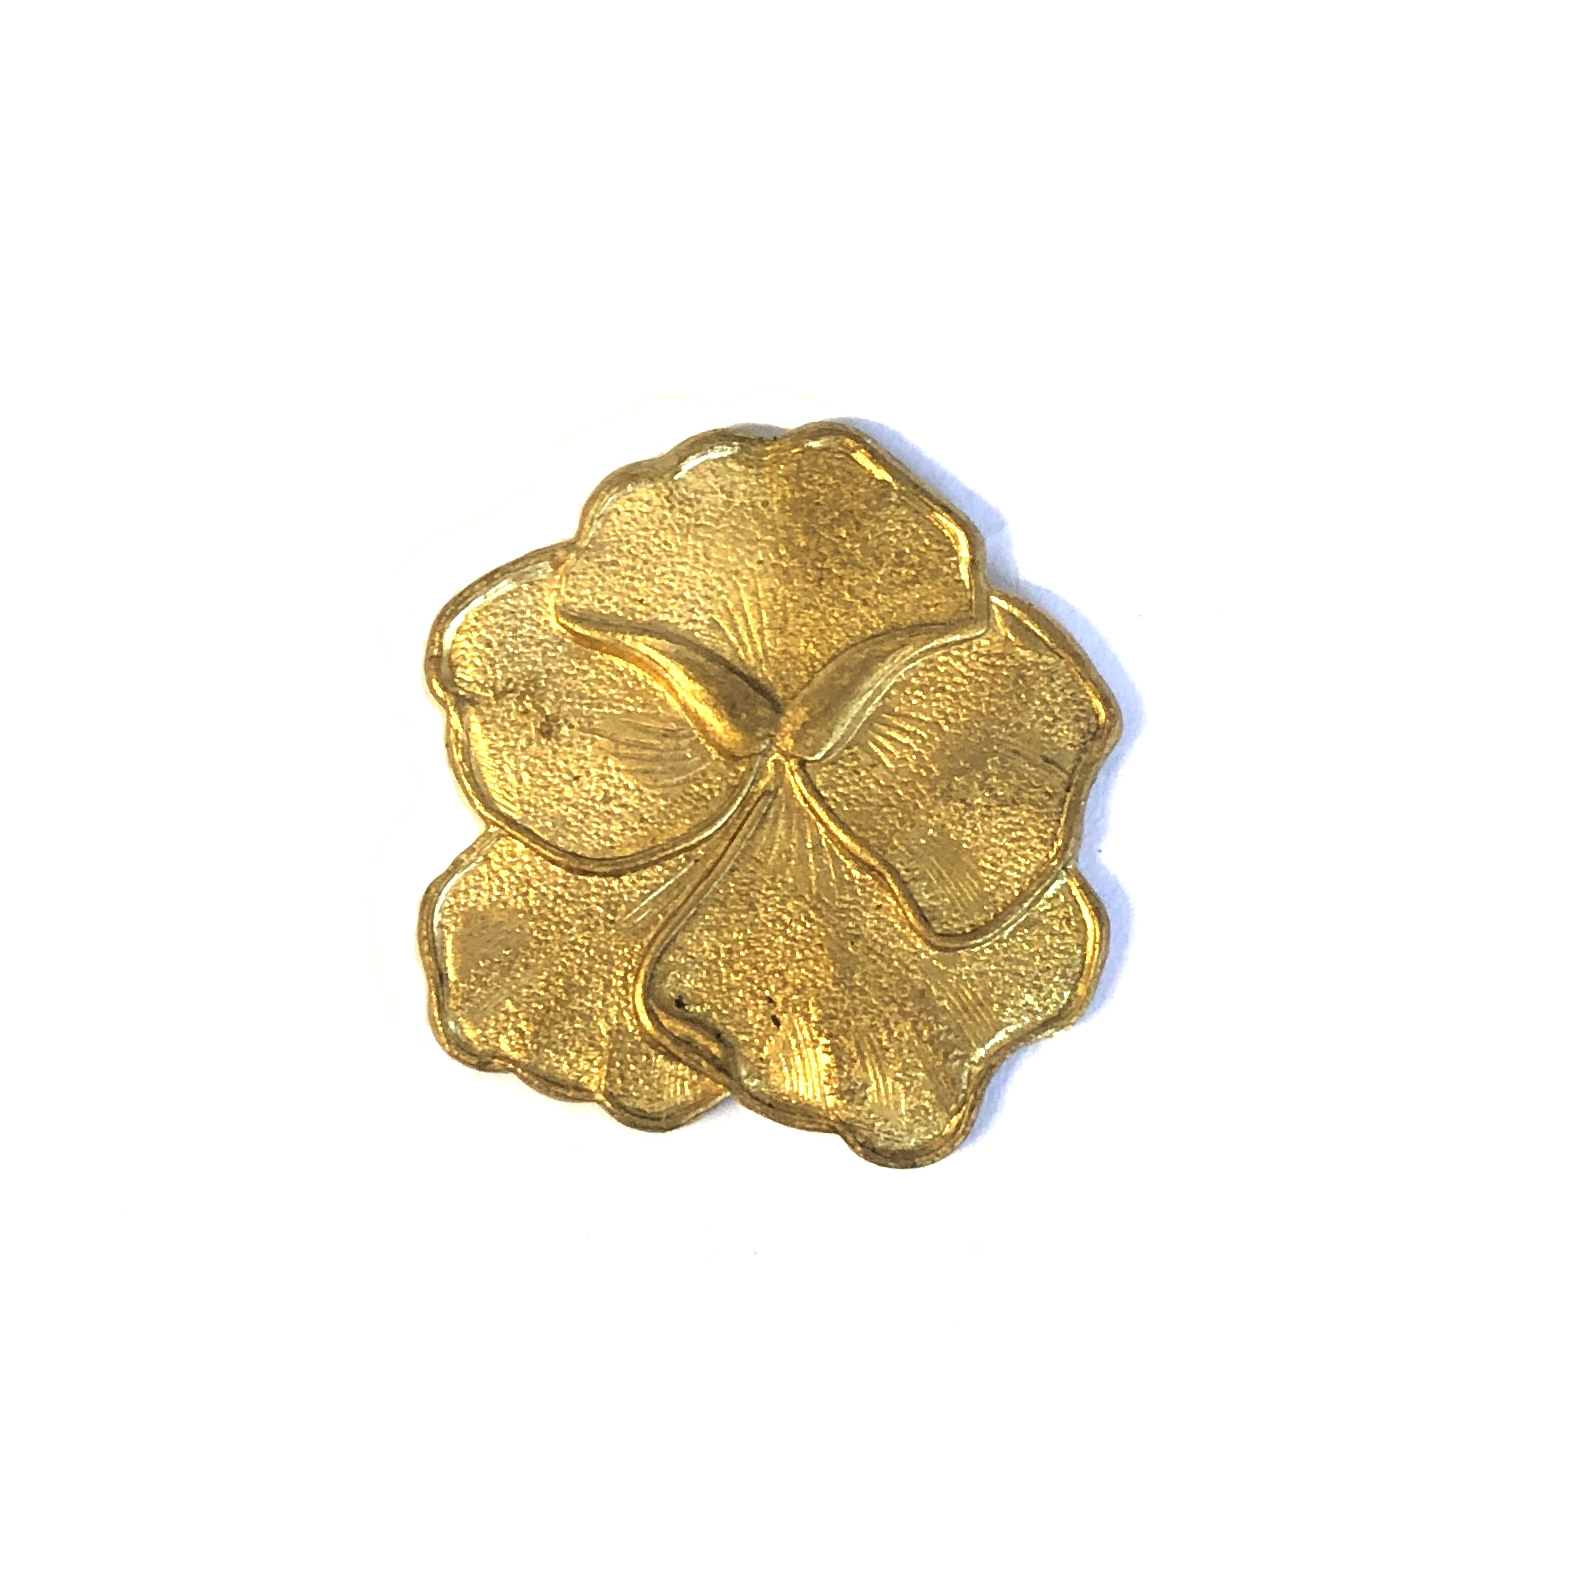 Brass Pansy Stamping, Flower, Raw Brass, 01302, floral, brass flowers, US made, nickel free, jewelry findings, B'sue Boutiques, pansy, embellishment